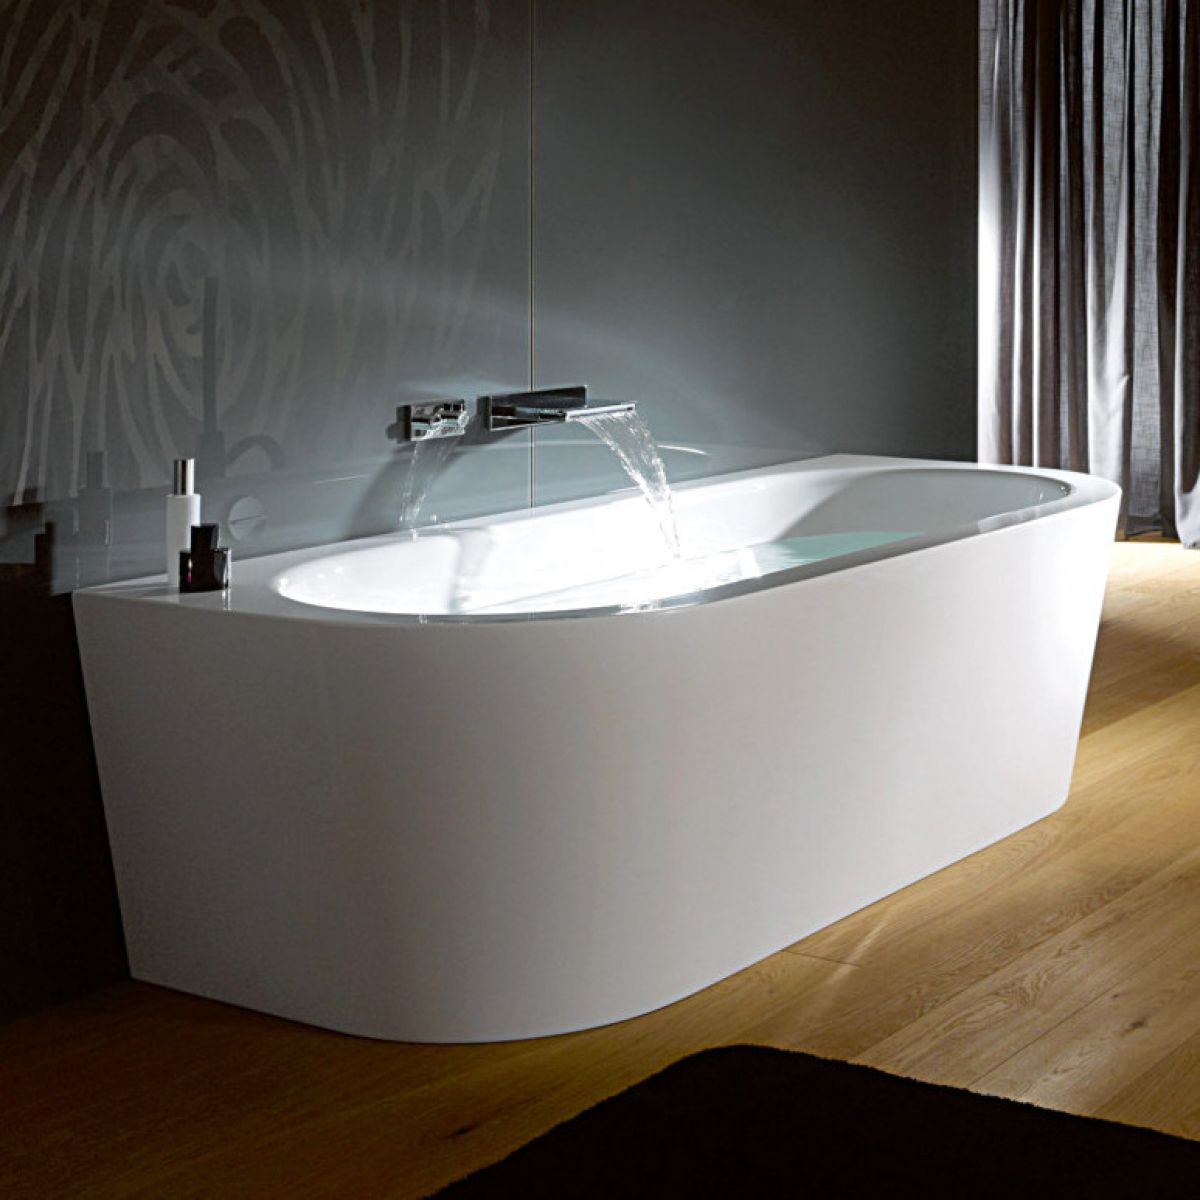 bette starlet i silhouette bath uk bathrooms. Black Bedroom Furniture Sets. Home Design Ideas